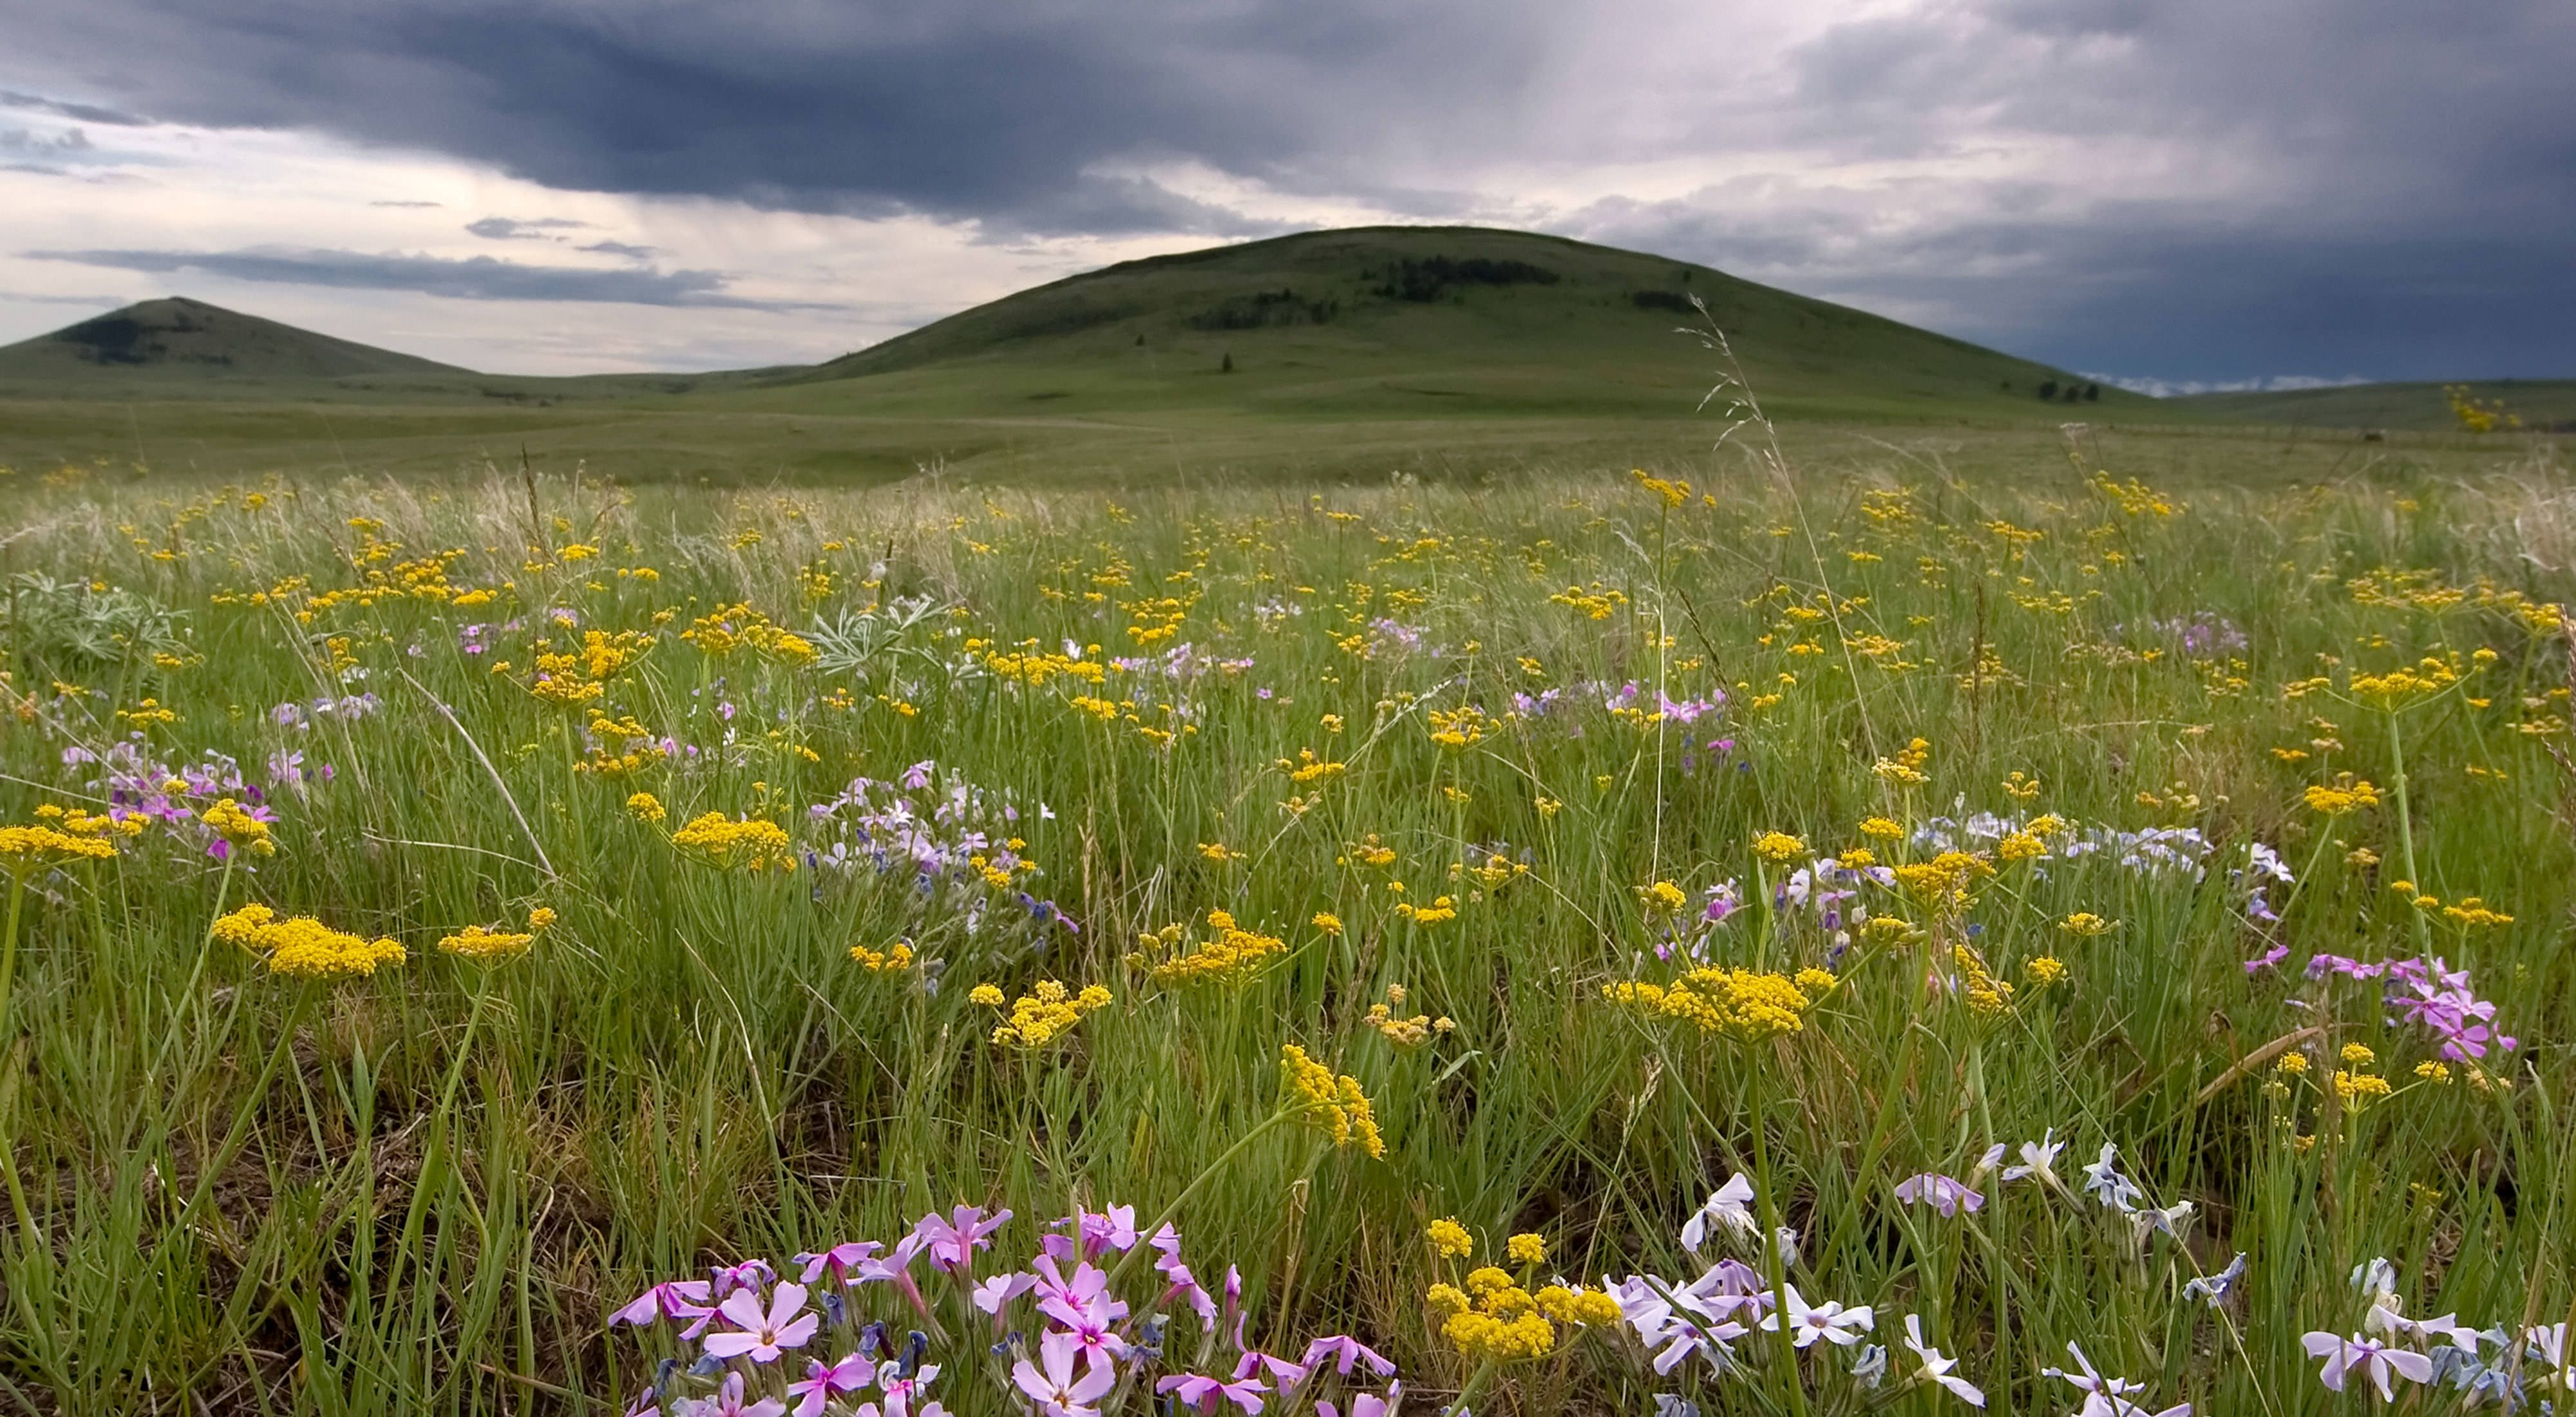 Zumwalt Prairie in Oregon's northeastern corner, is North America's largest remaining grassland of its type.